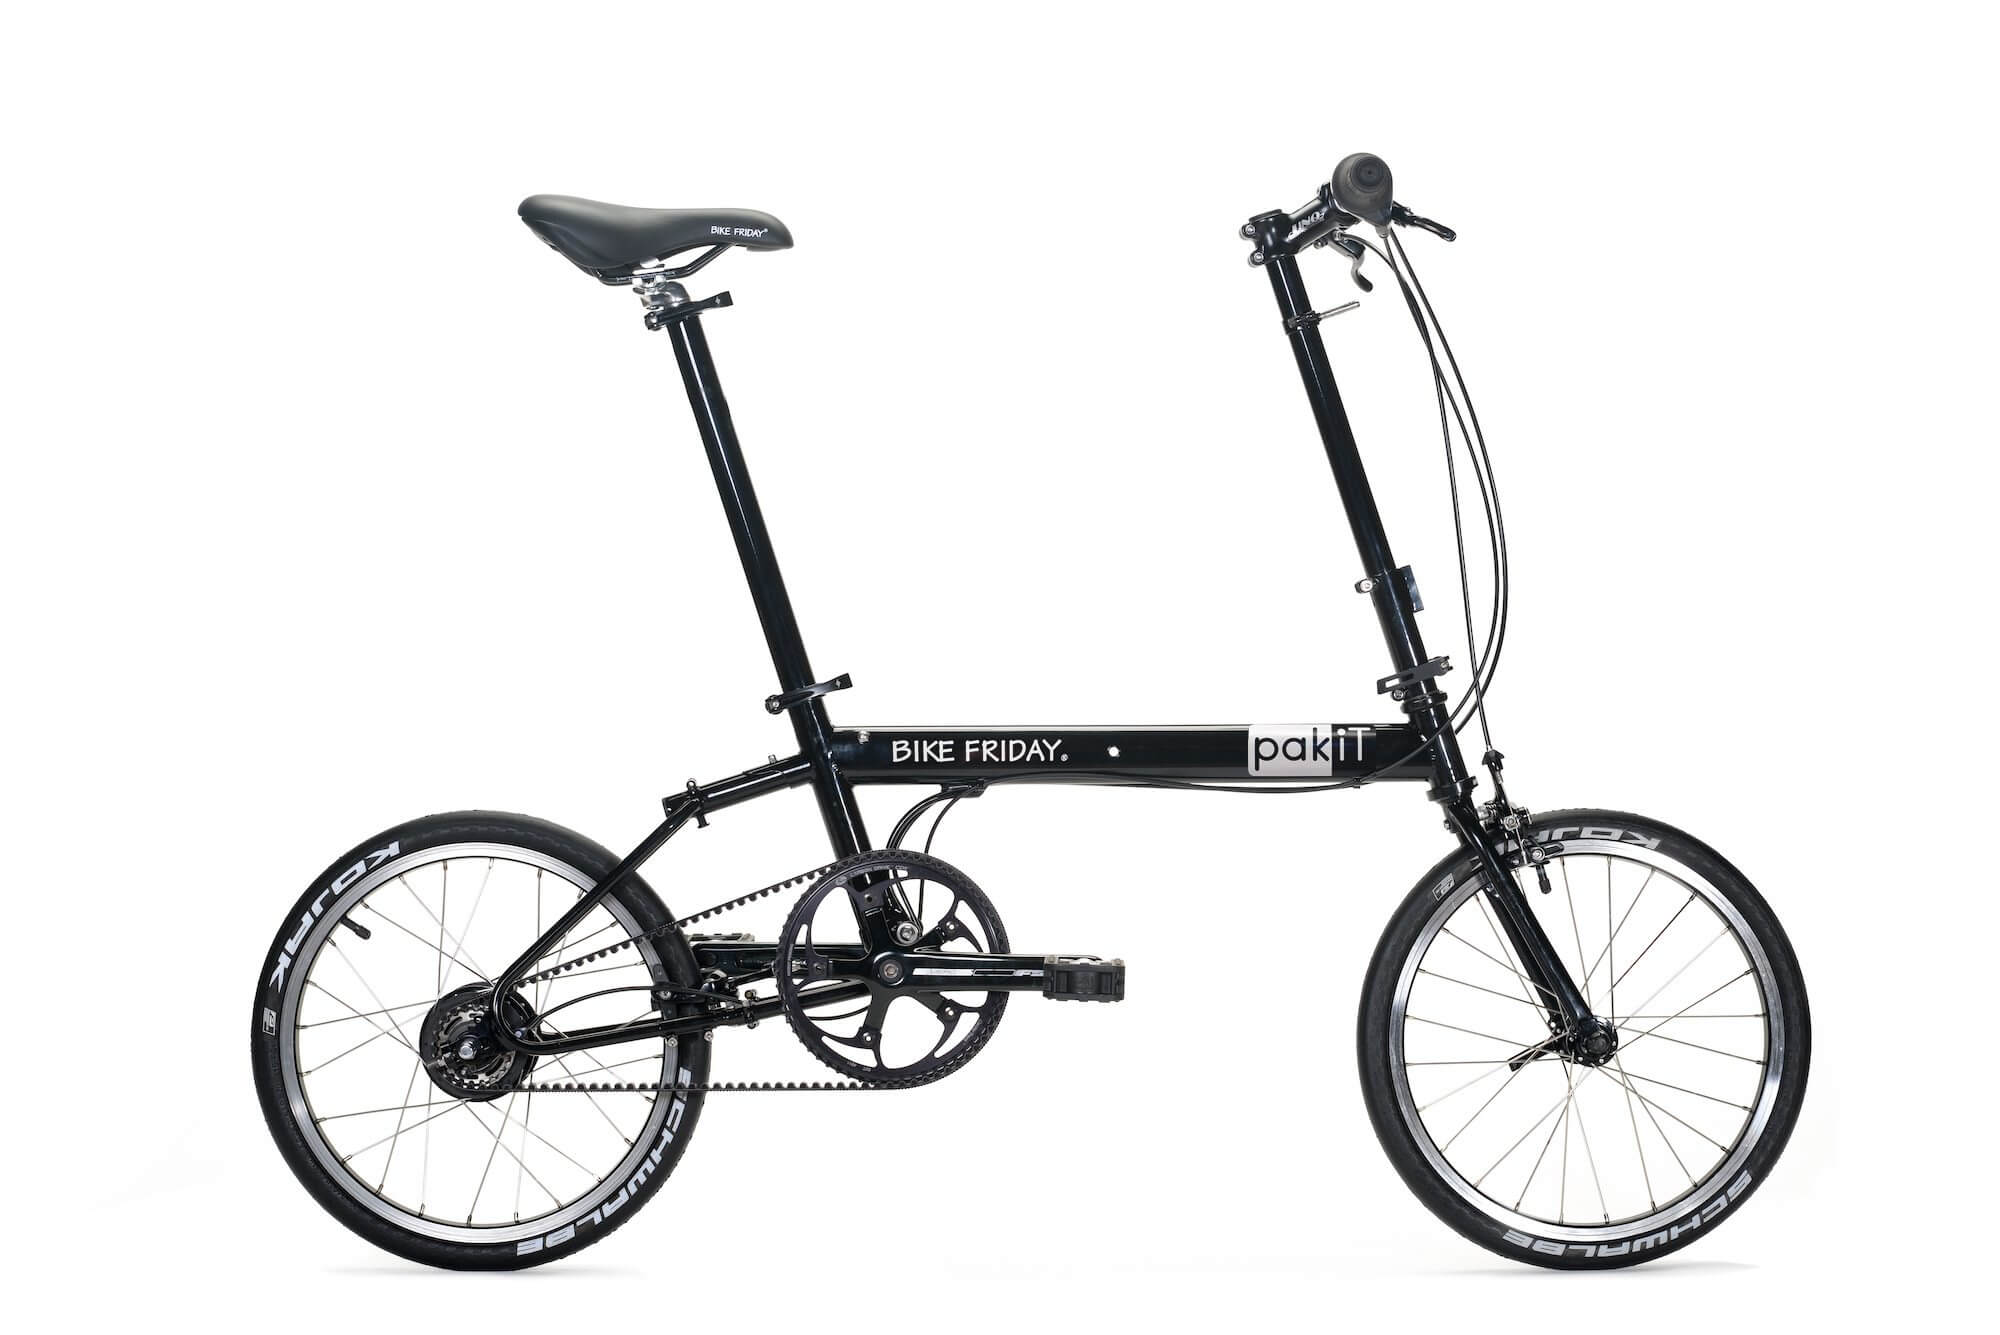 Bike Friday PakiT folding bike with carbon drive